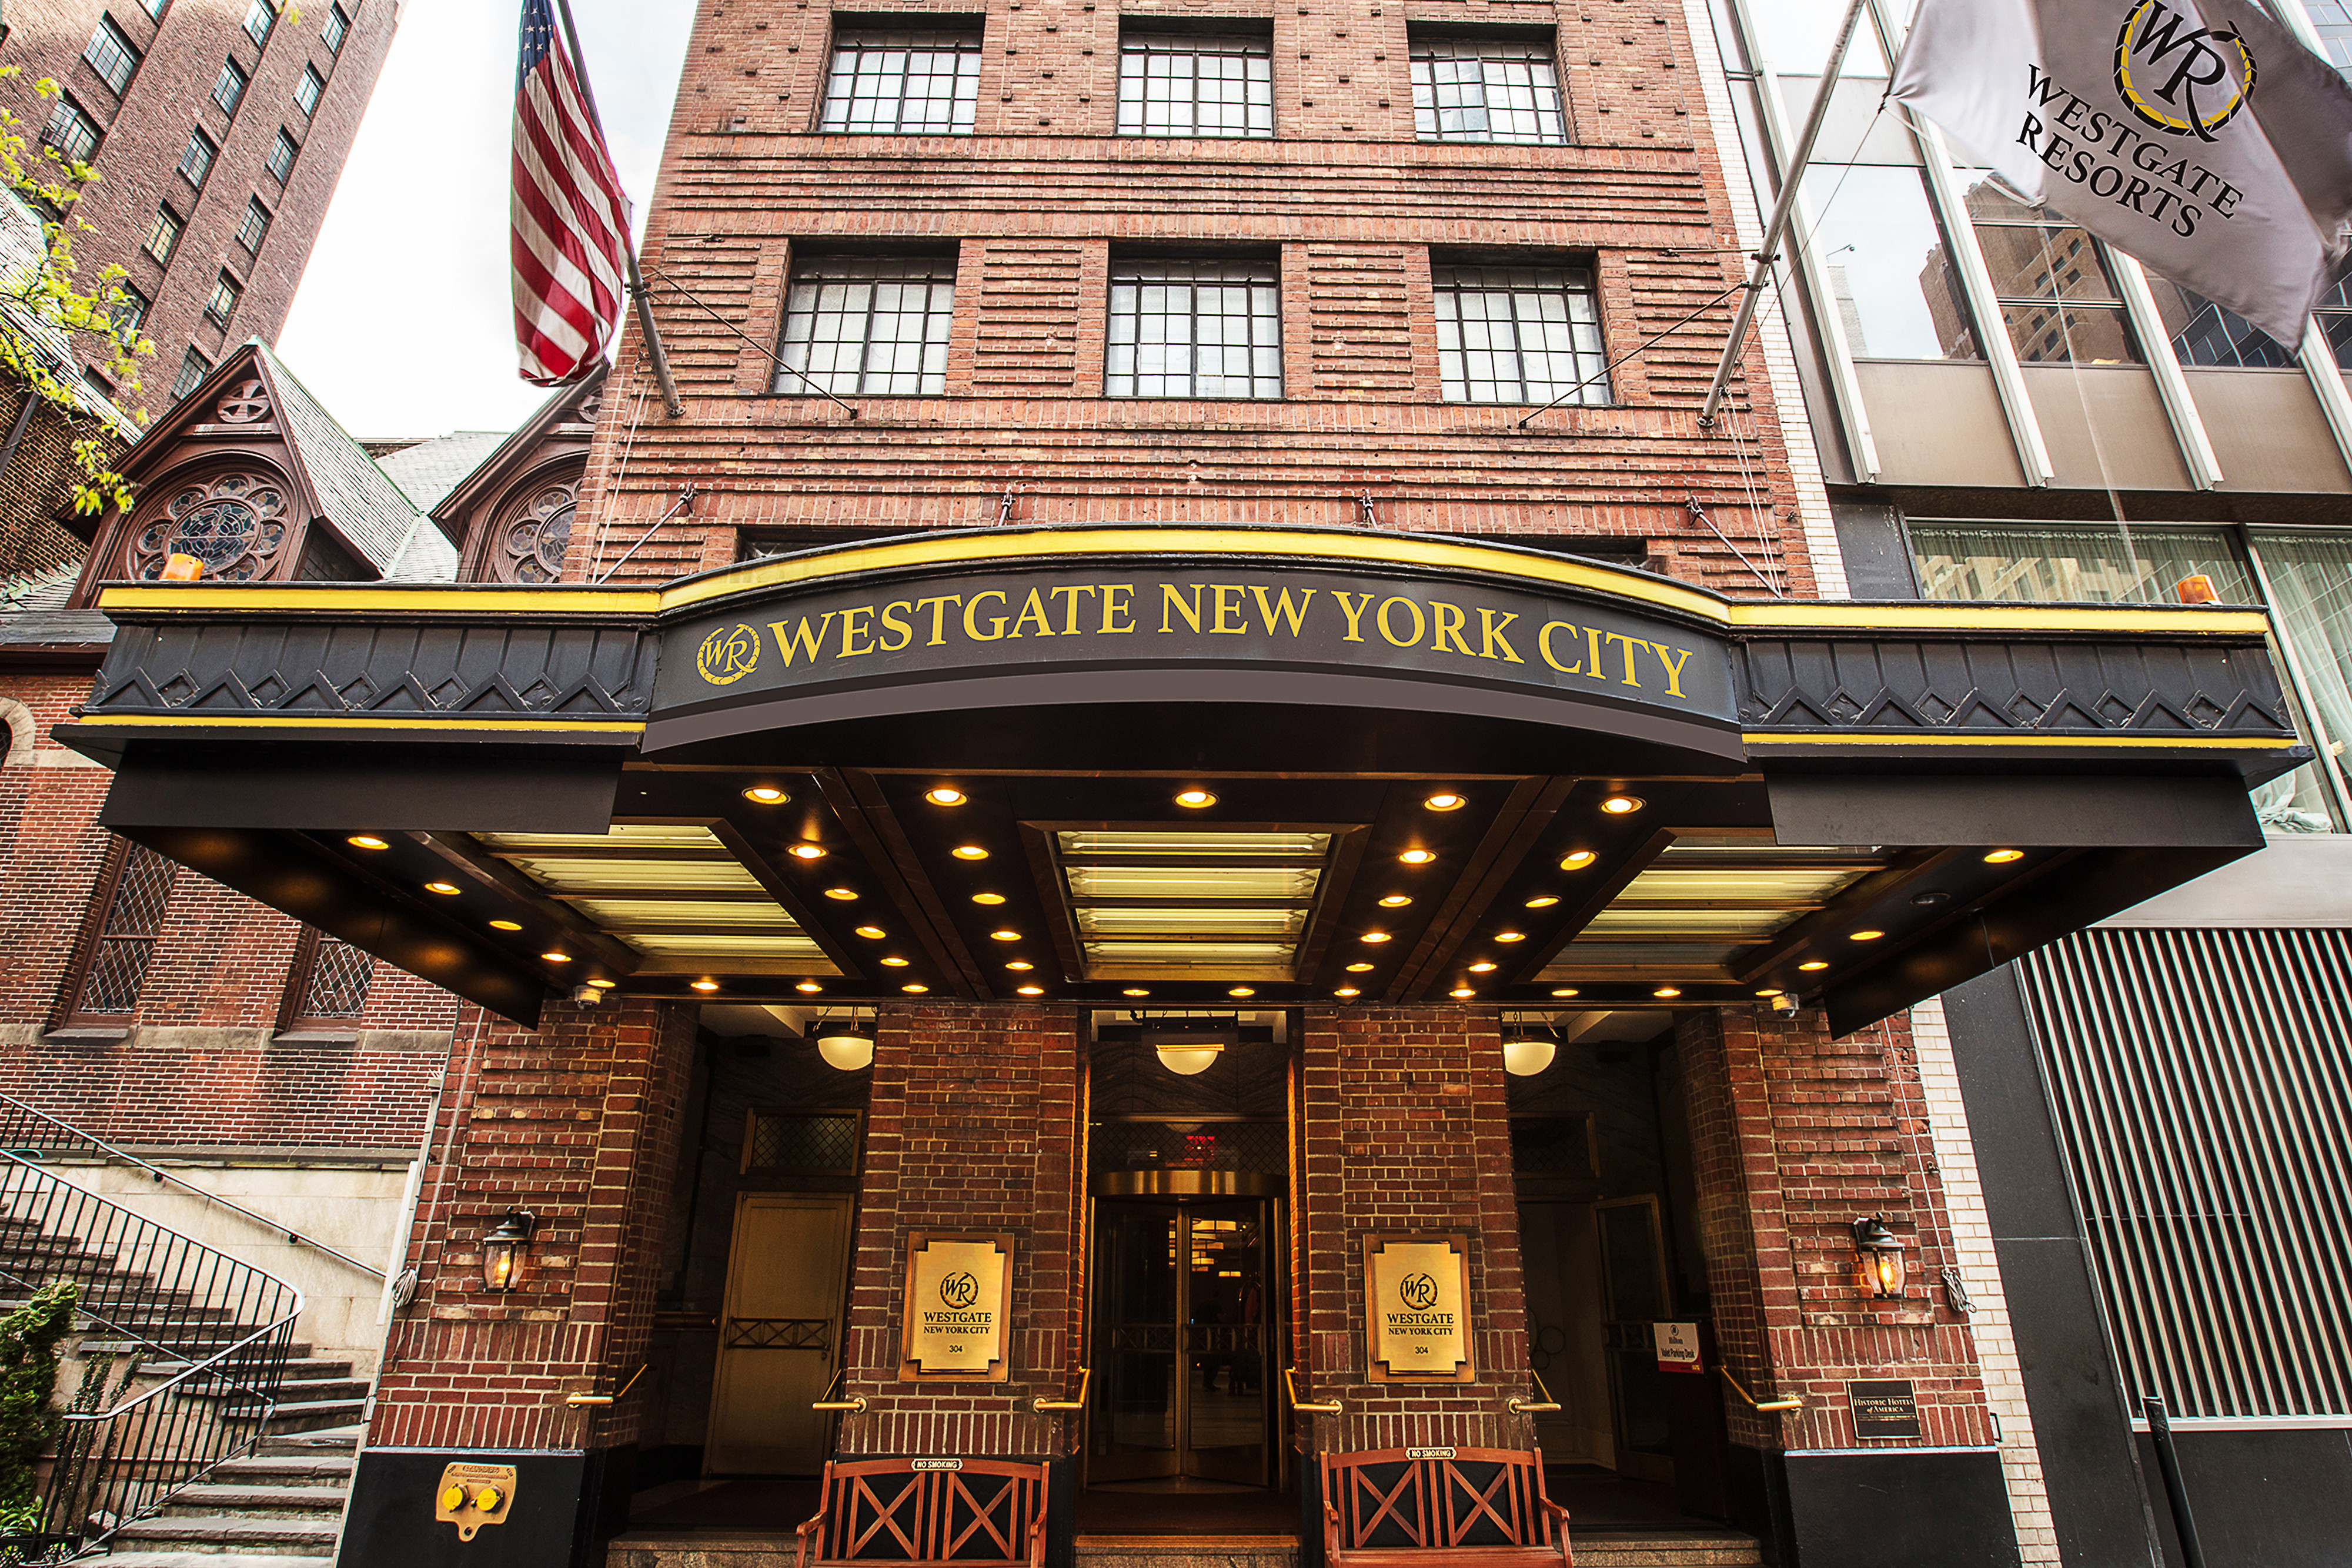 Midtown Manhattan New York City Hotel Near Grand Central Station | Westgate New York City